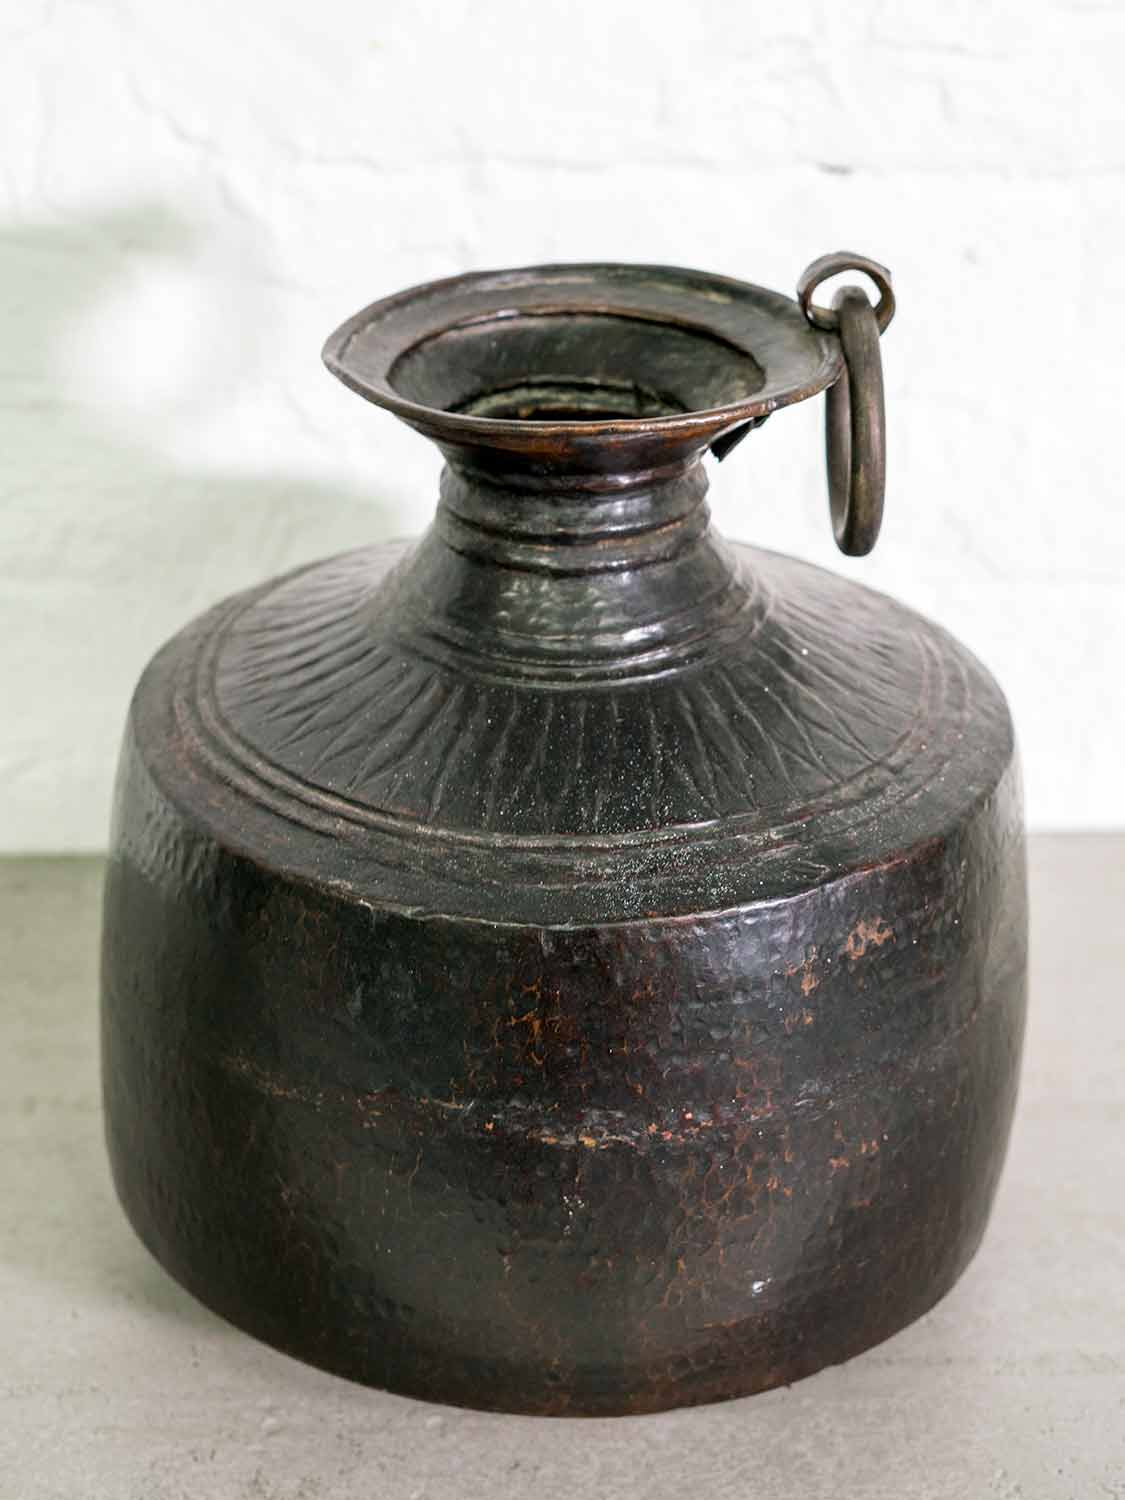 Blackened Copper Indian Water Pot